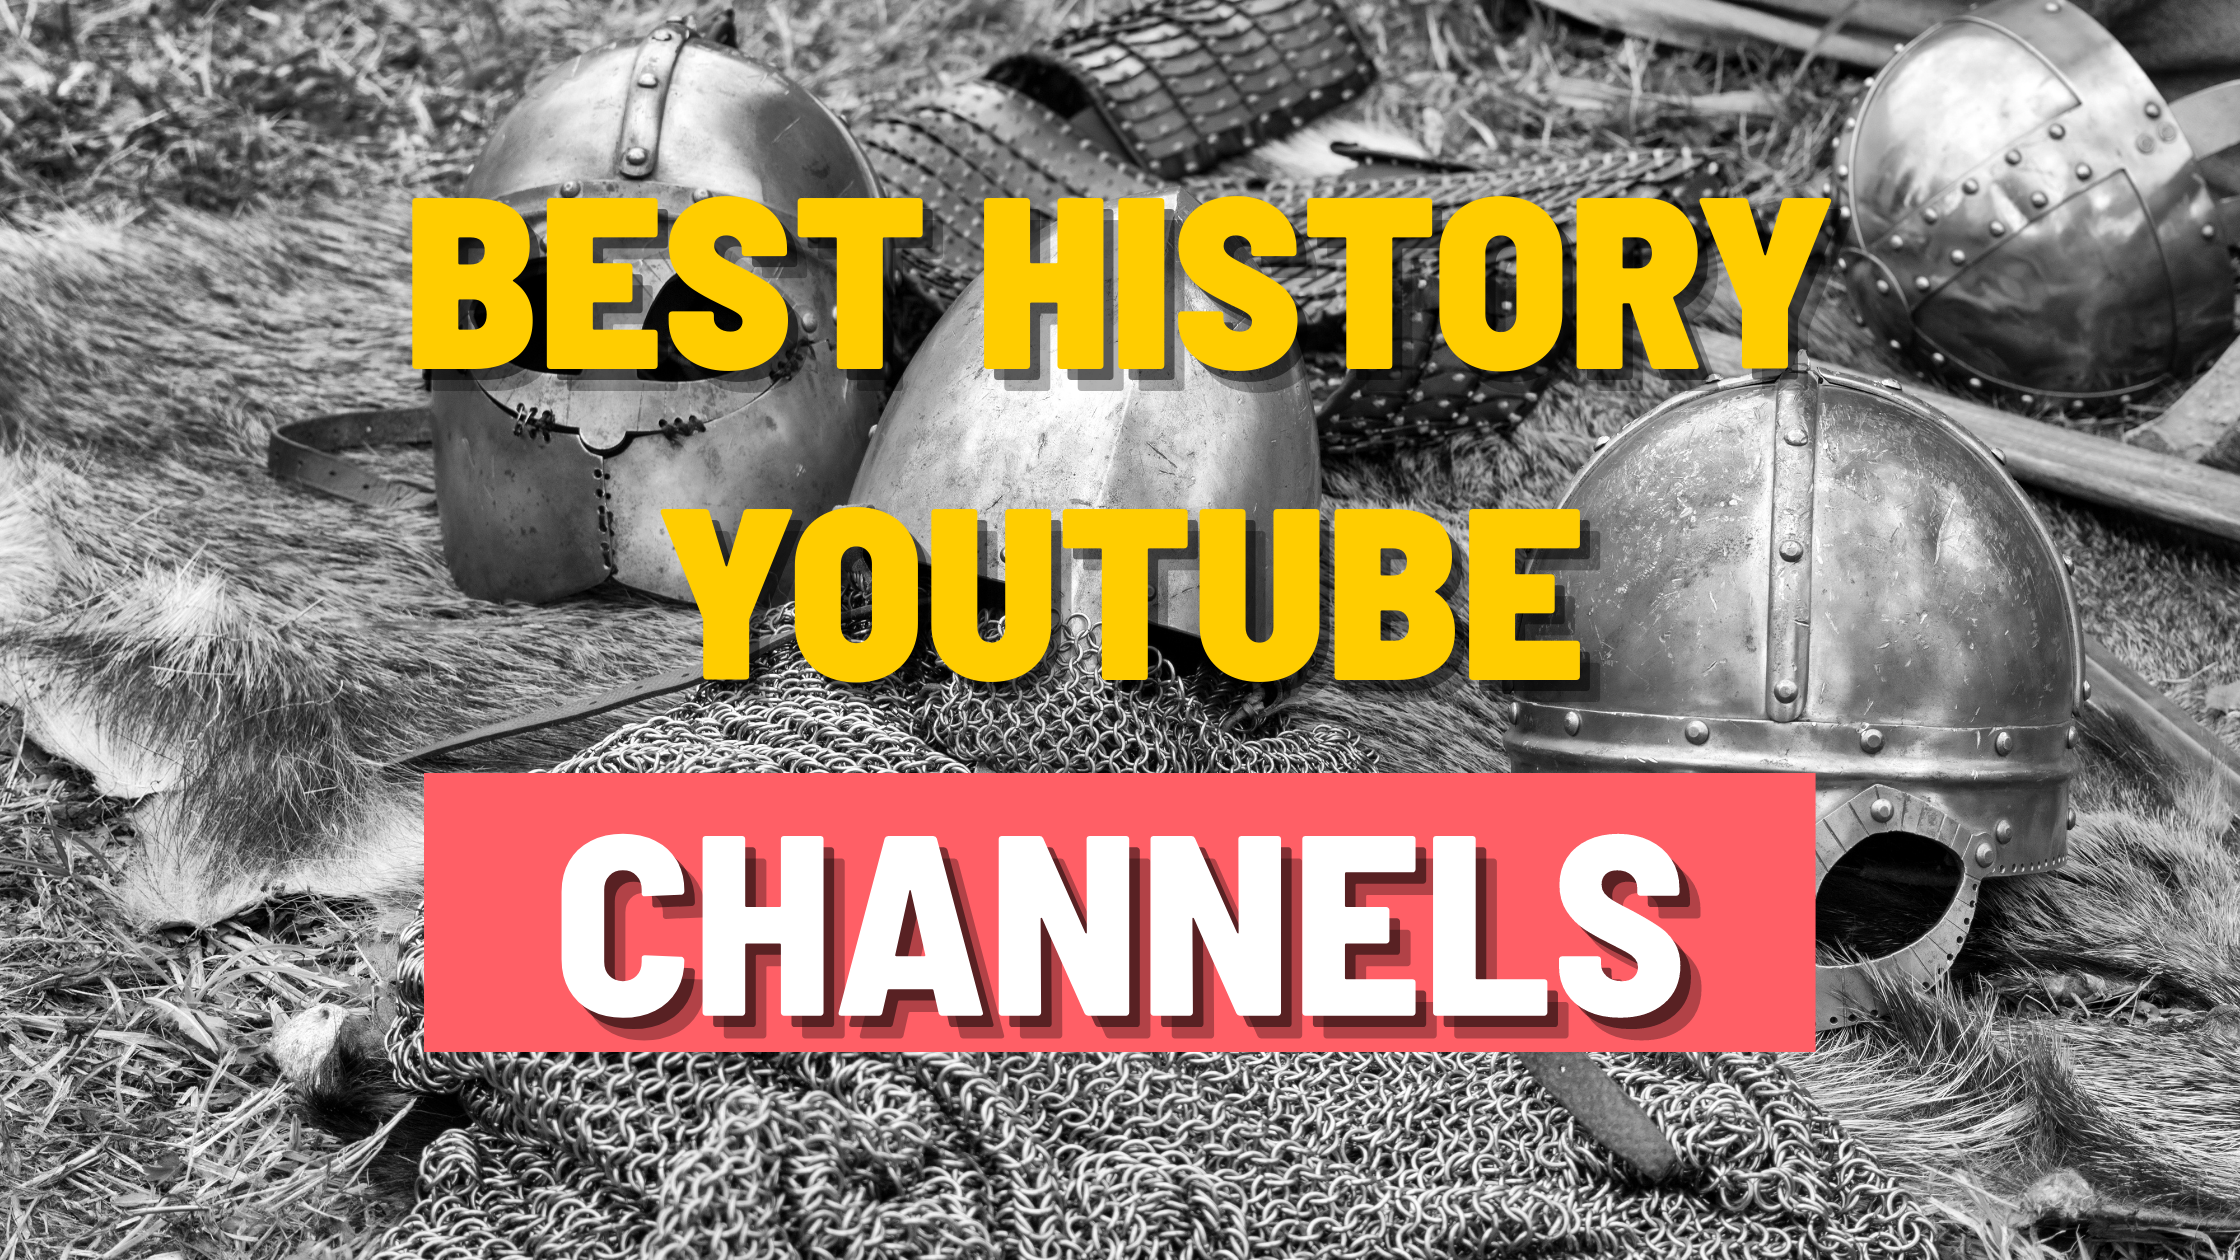 Best History YouTube channels